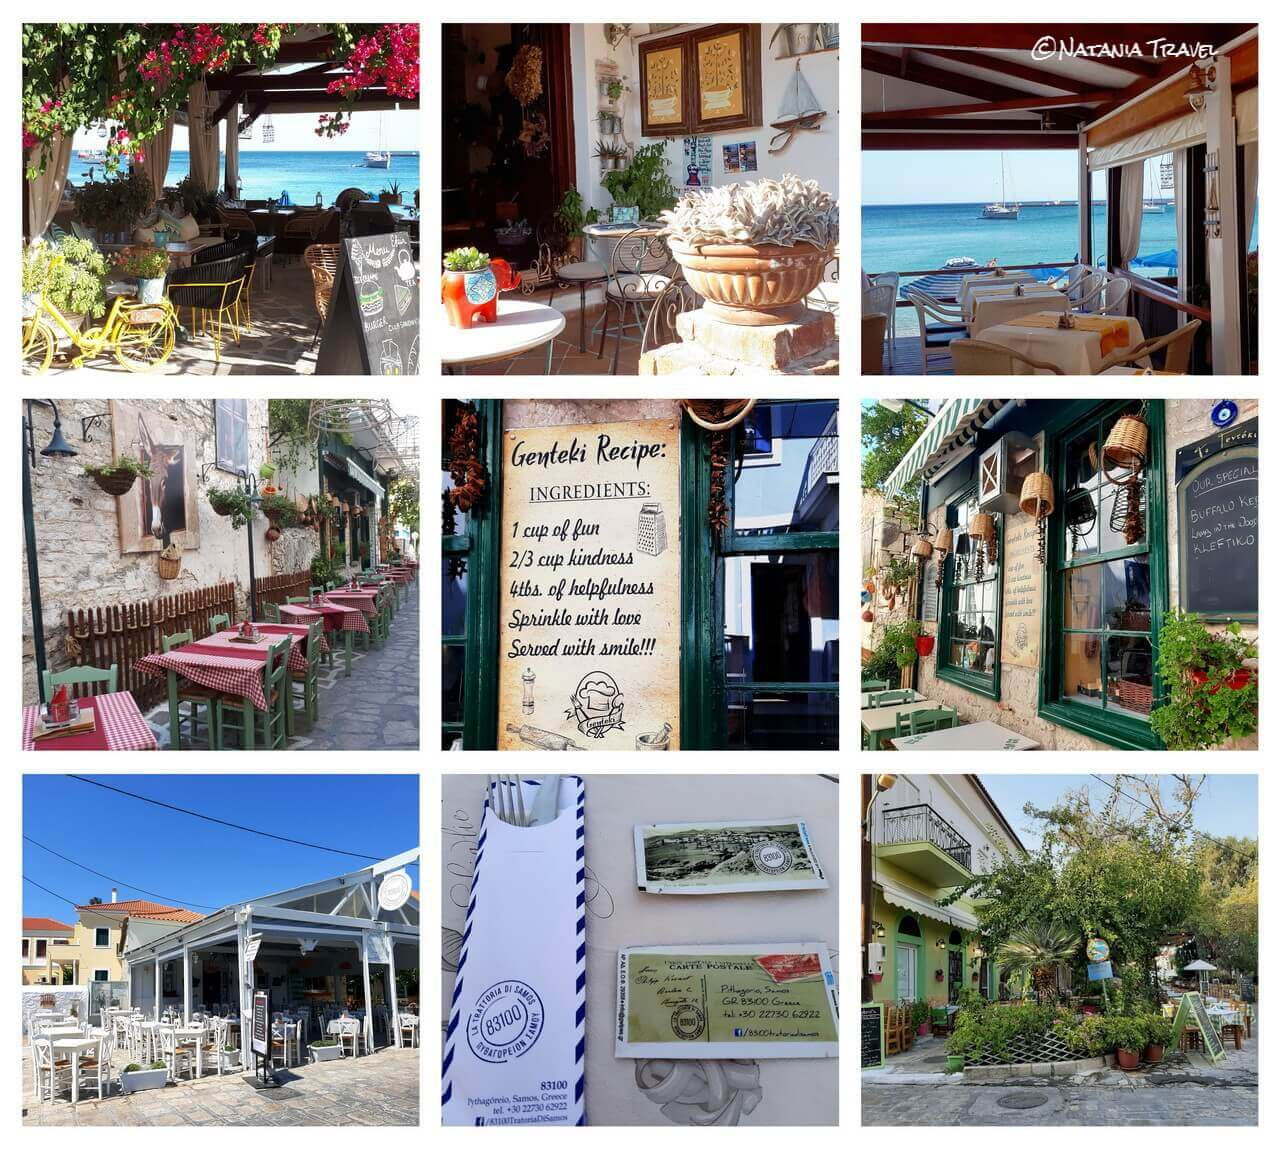 The restaurants in Pythagorion